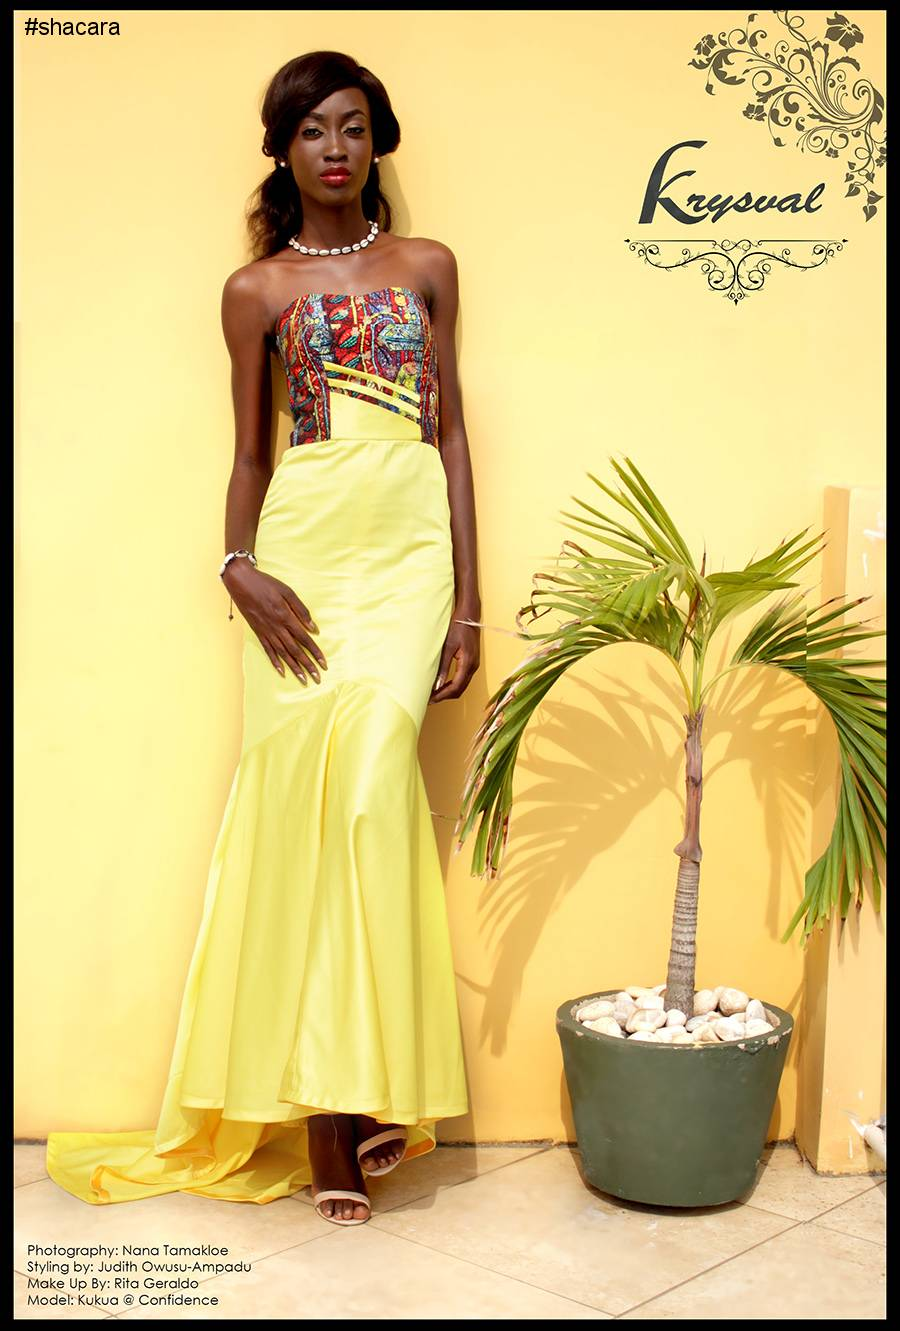 New Ghanaian Fashion Brand Krysval Debuts Its First Look Book, The 'Harmattan 2016' Collection